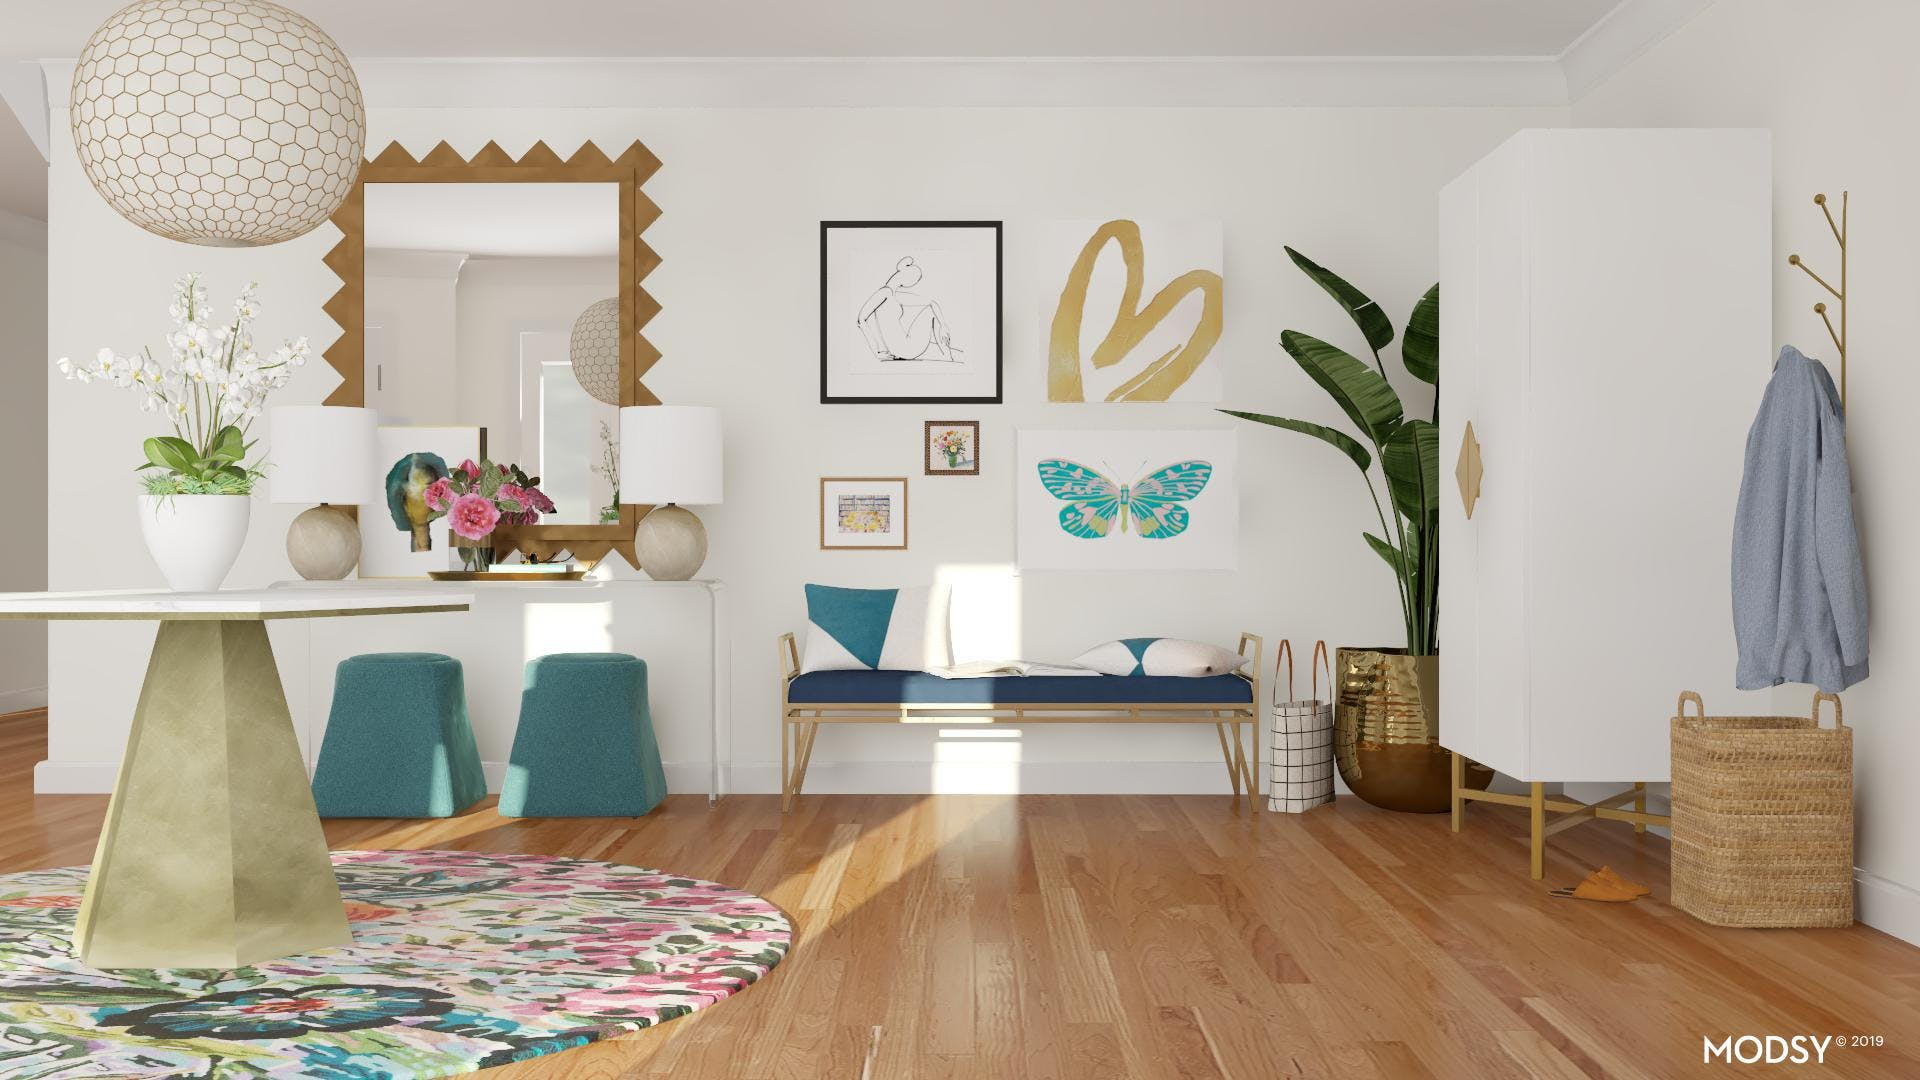 Bright Room With Colorful Accents